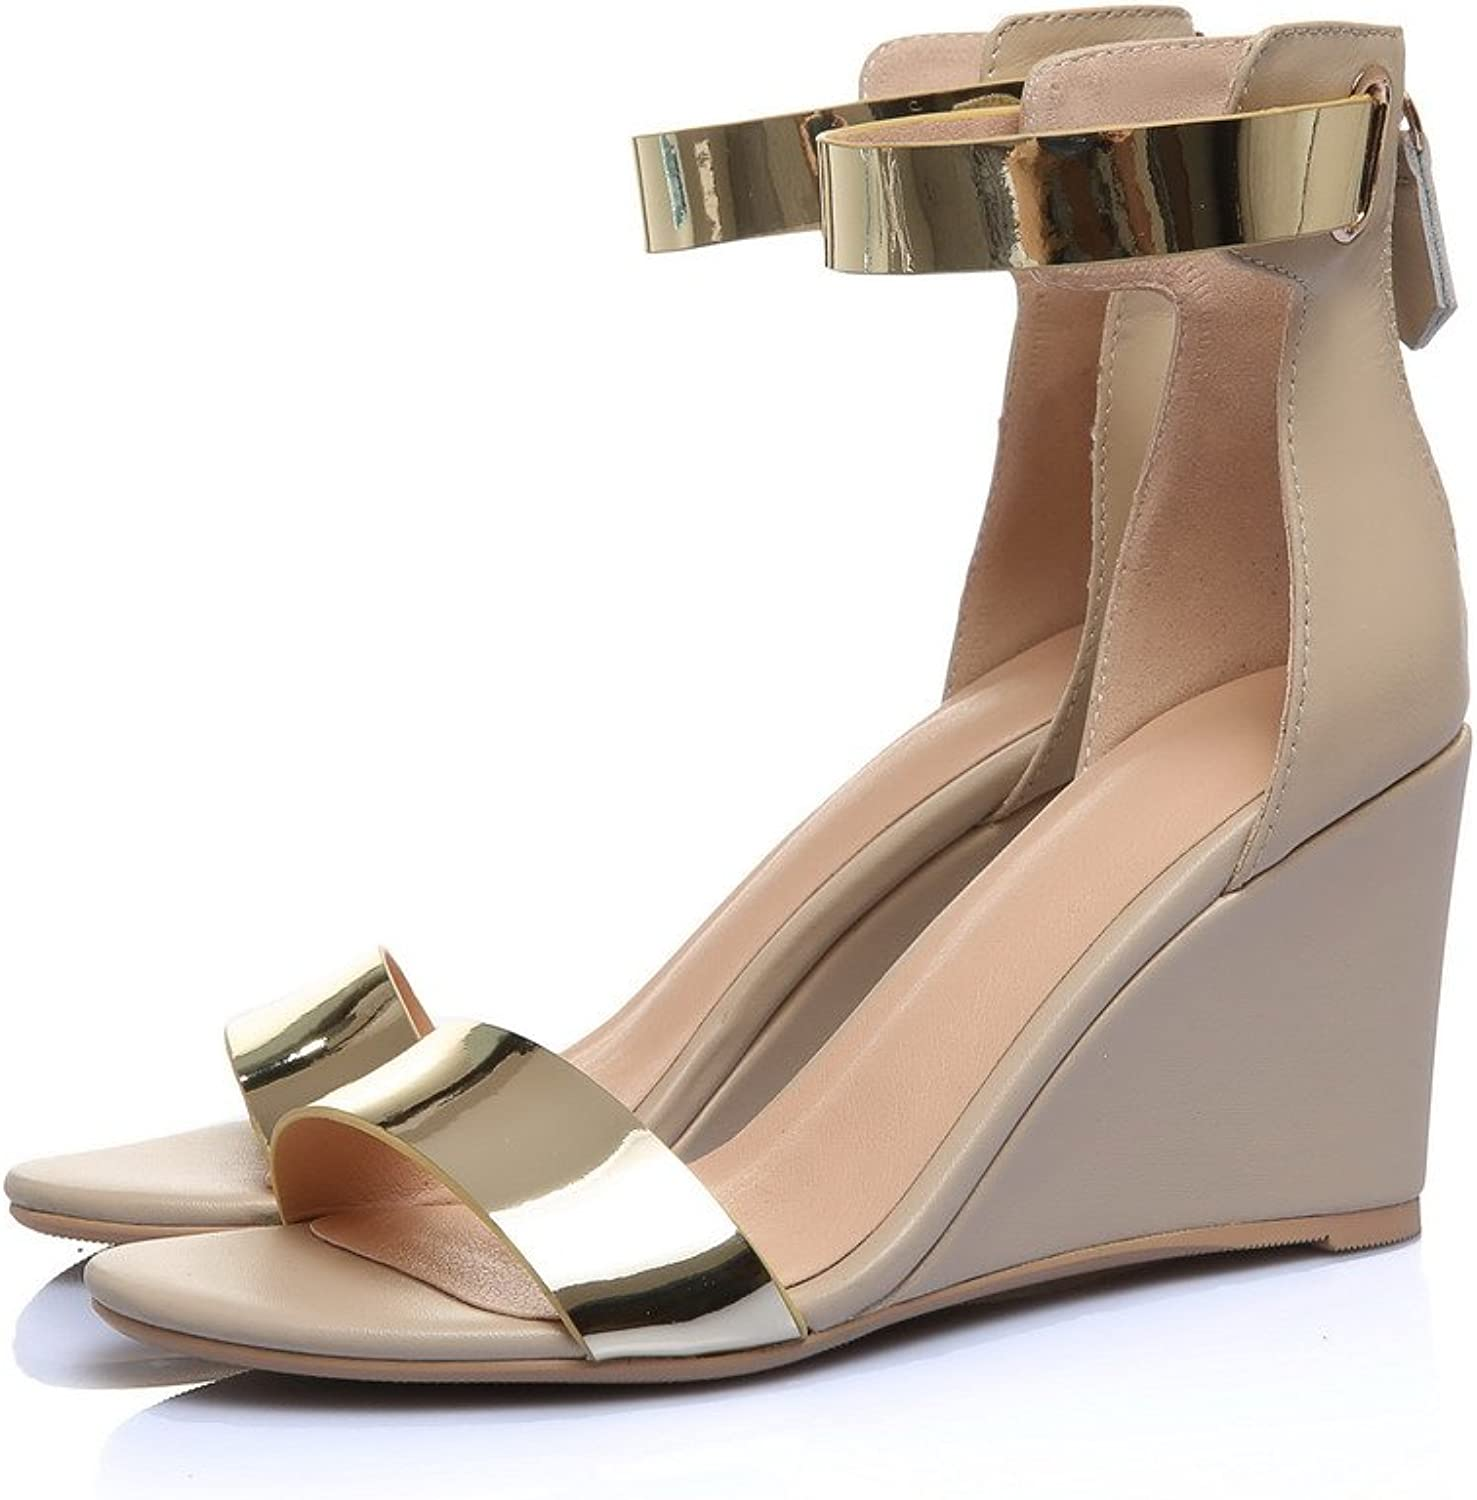 AmoonyFashion Women's High-Heels Soft Material Assorted color Zipper Open-Toe Sandals